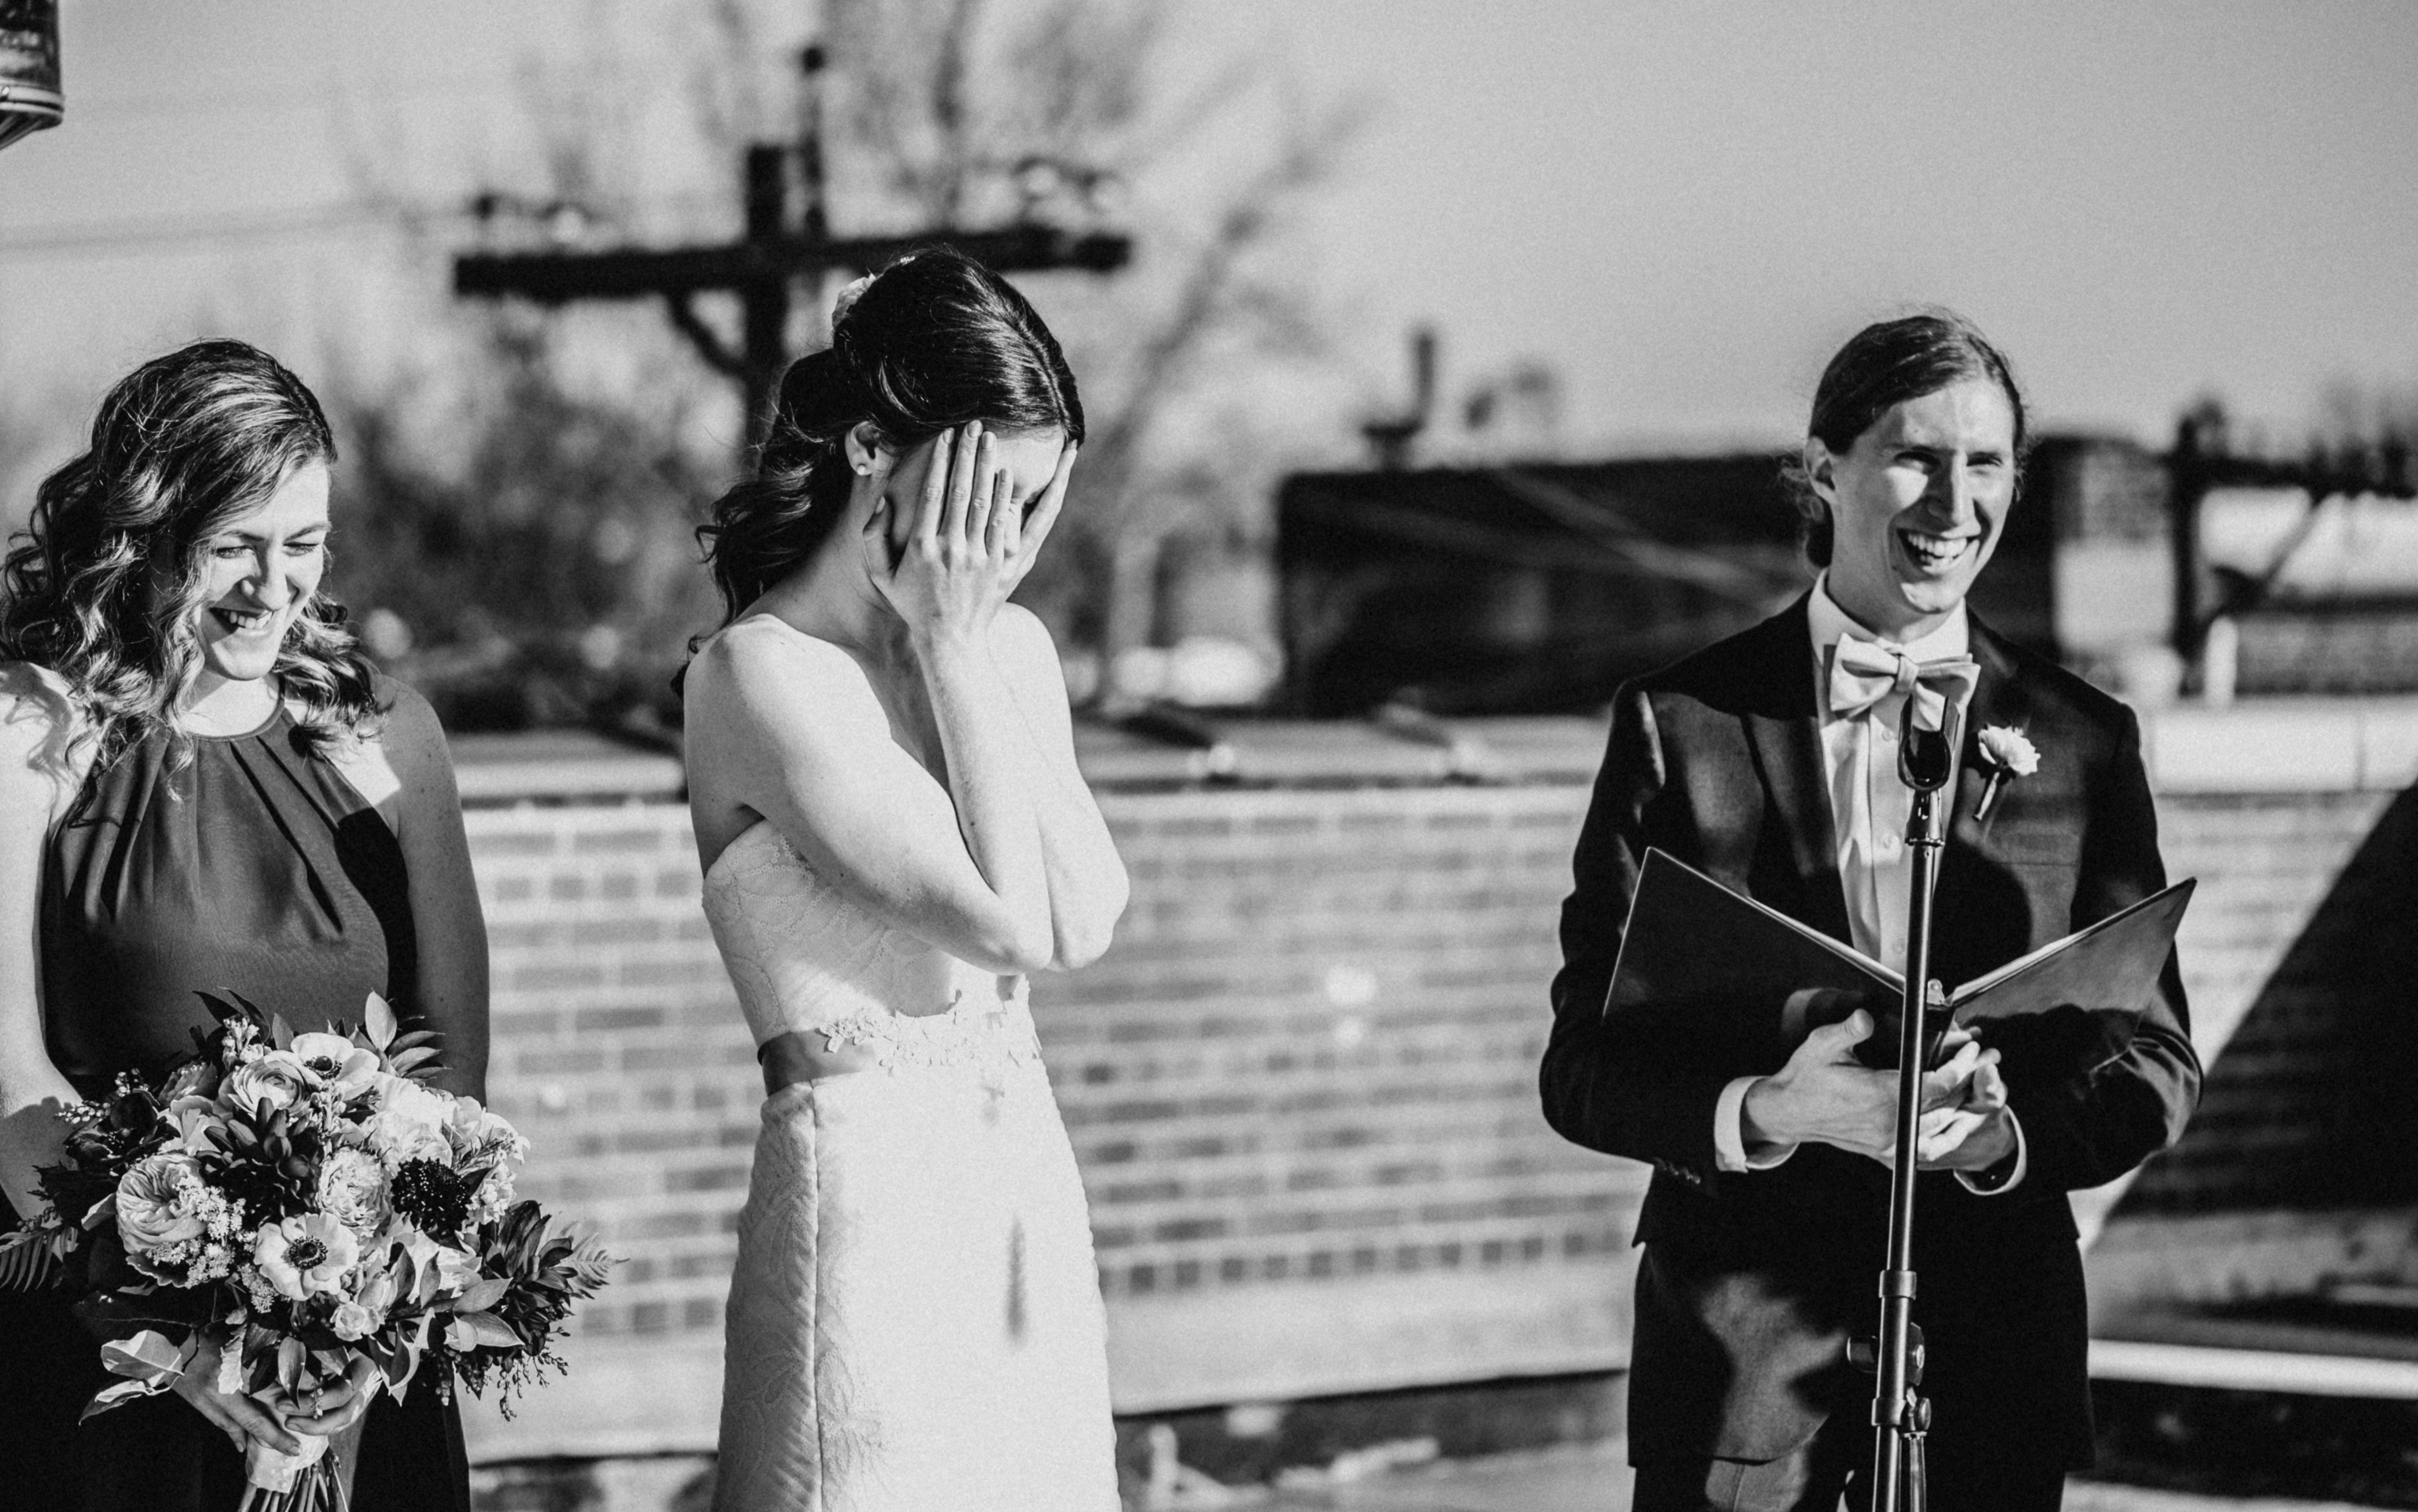 Fun ceremony wedding on rooftop